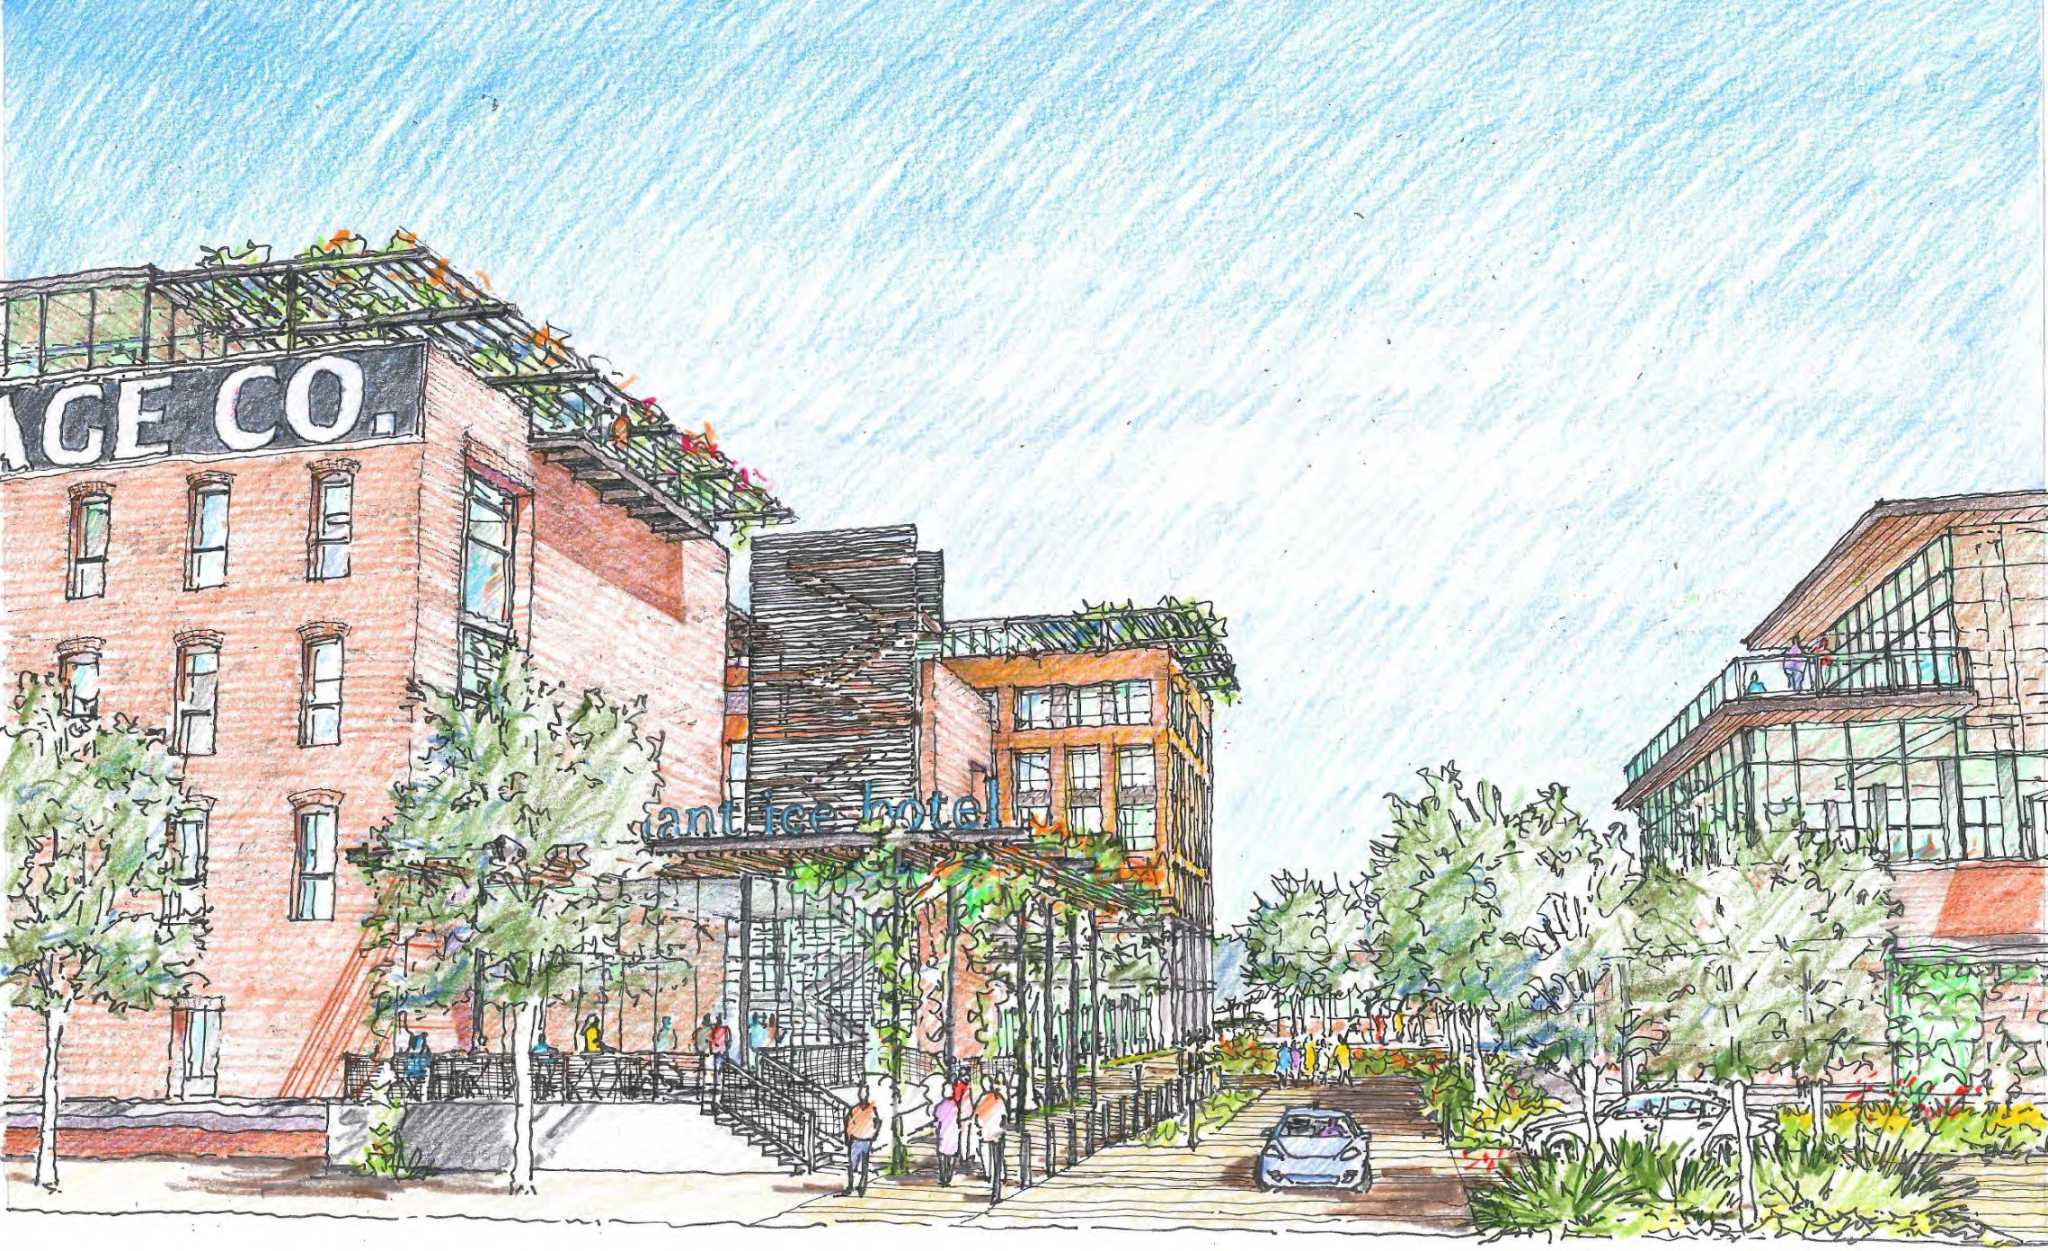 Boutique Hotel Apartments Among Early Plans For Merchants